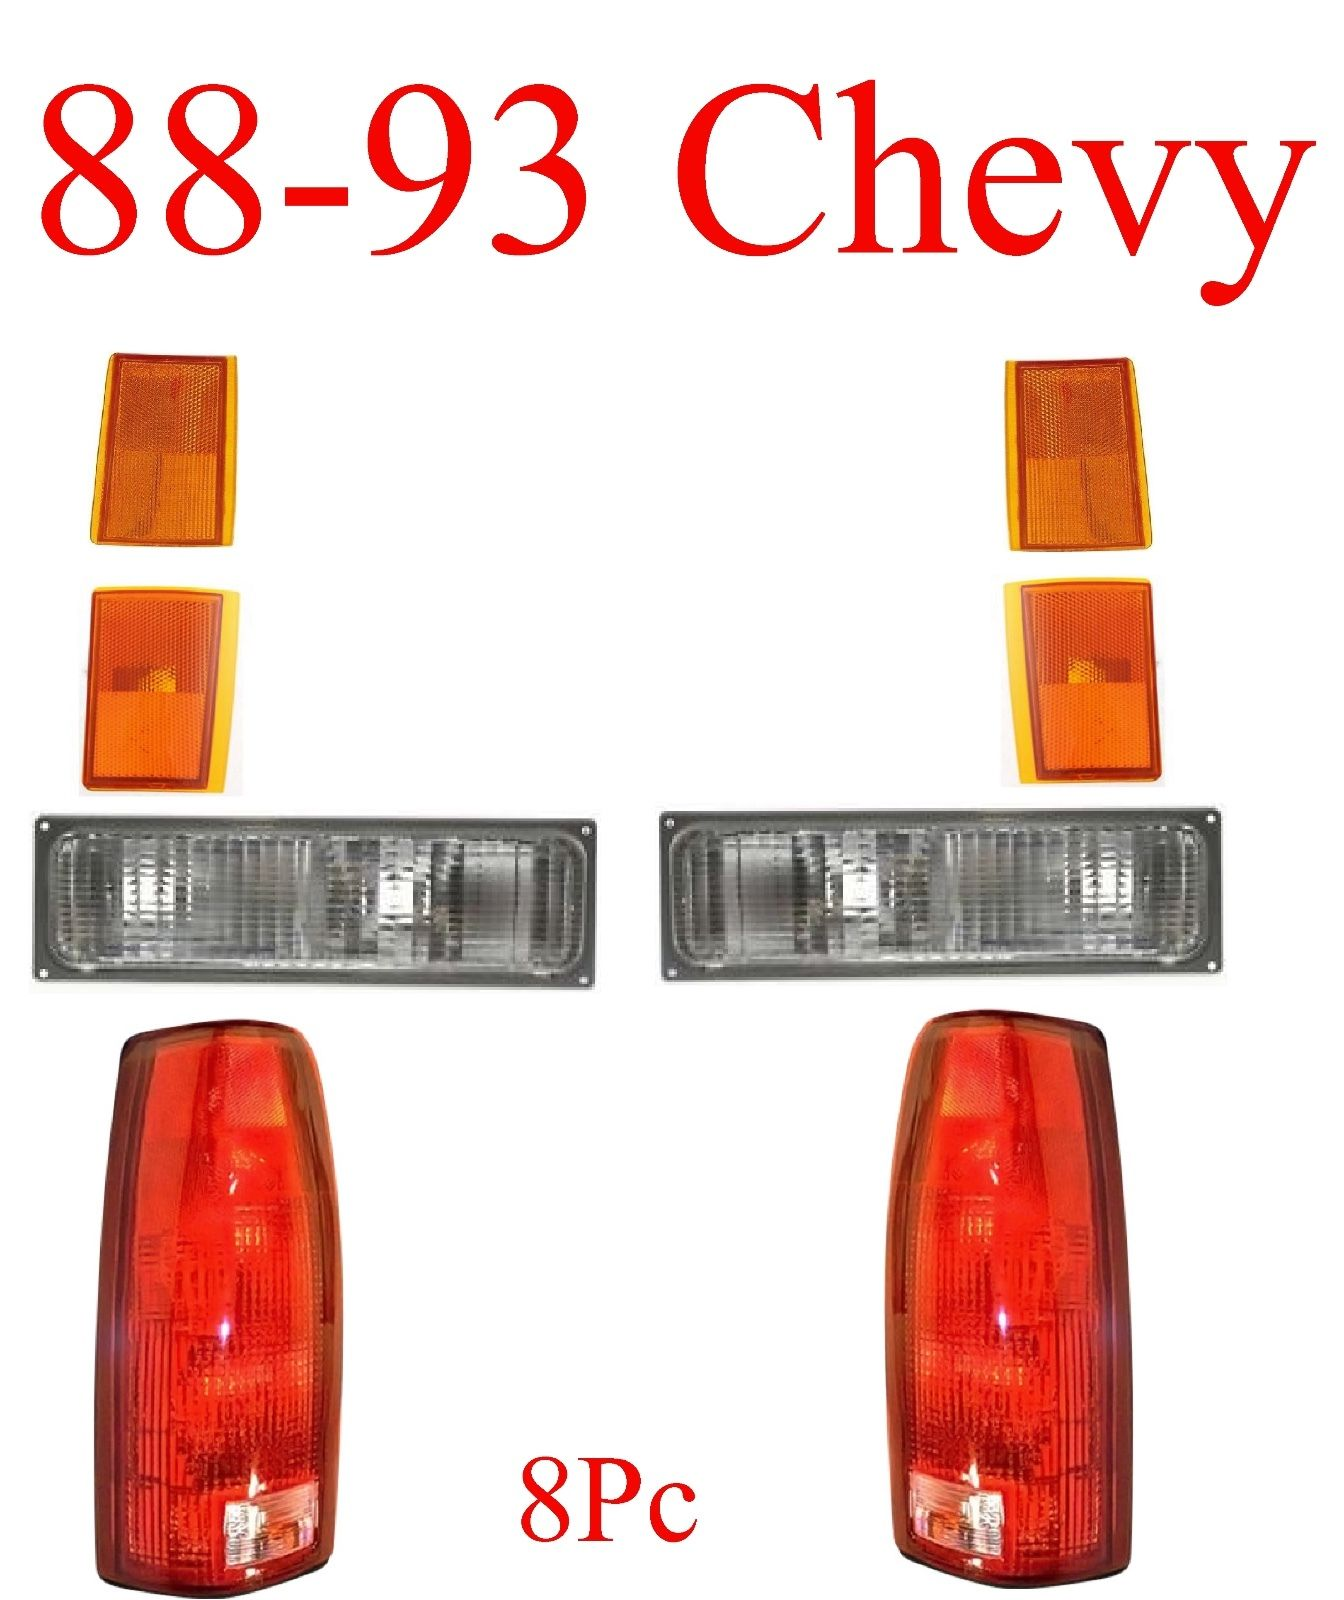 88-93 Chevy 8Pc Tail, Parking & Side Amber Light Kit